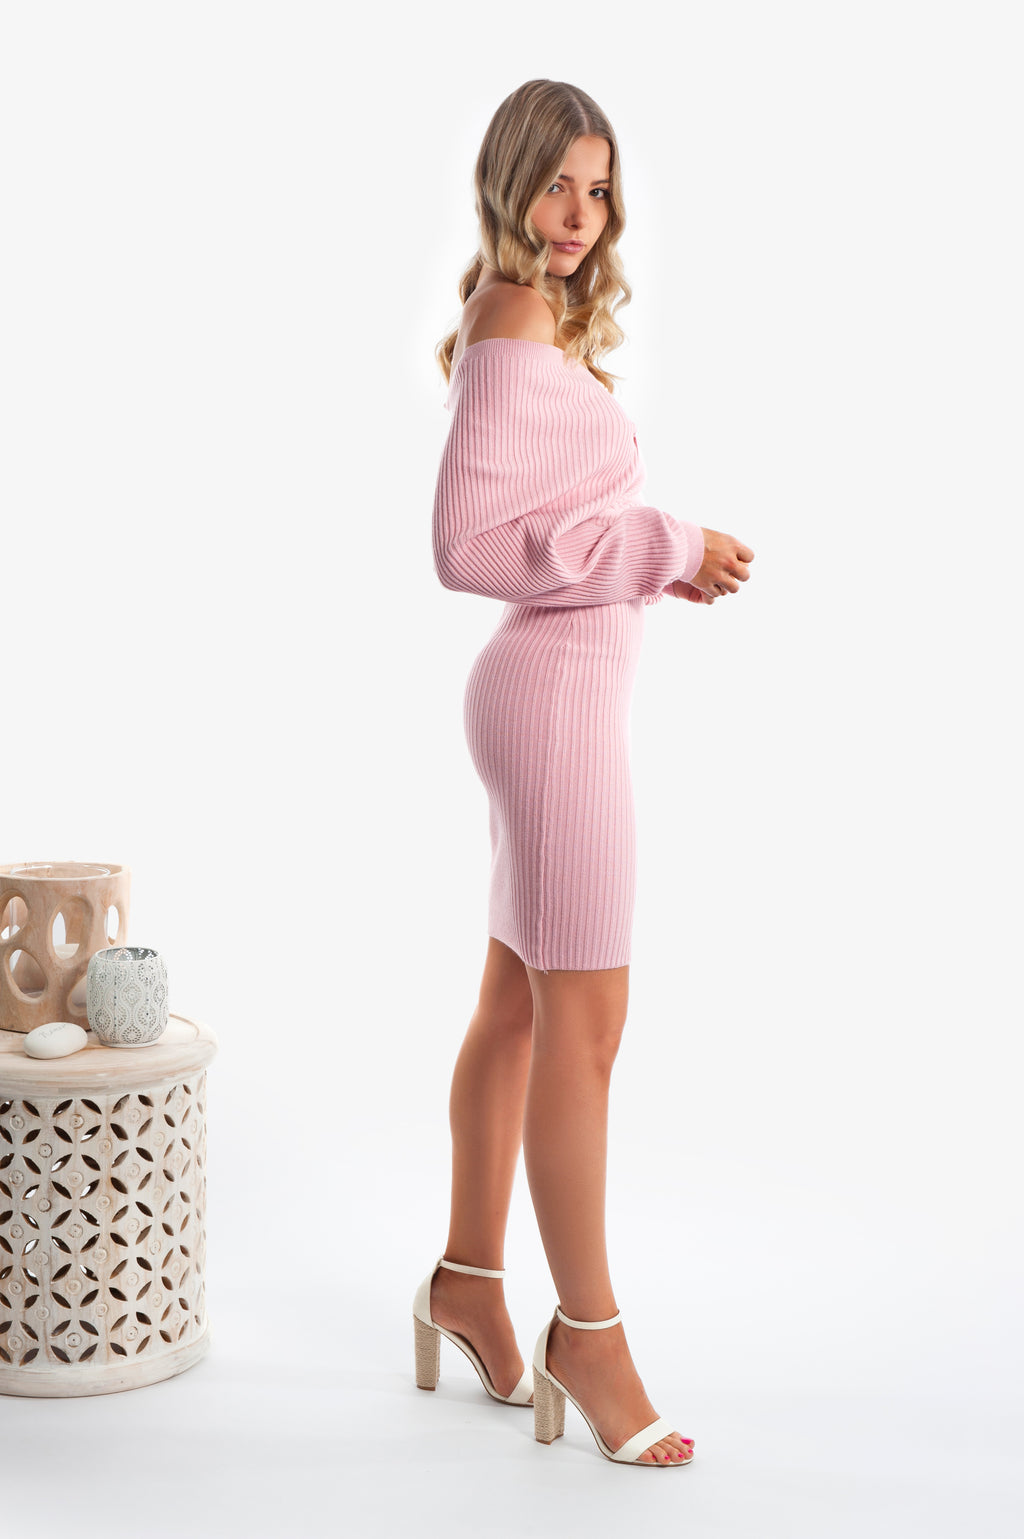 Quinn Knit Dress - Islandlace